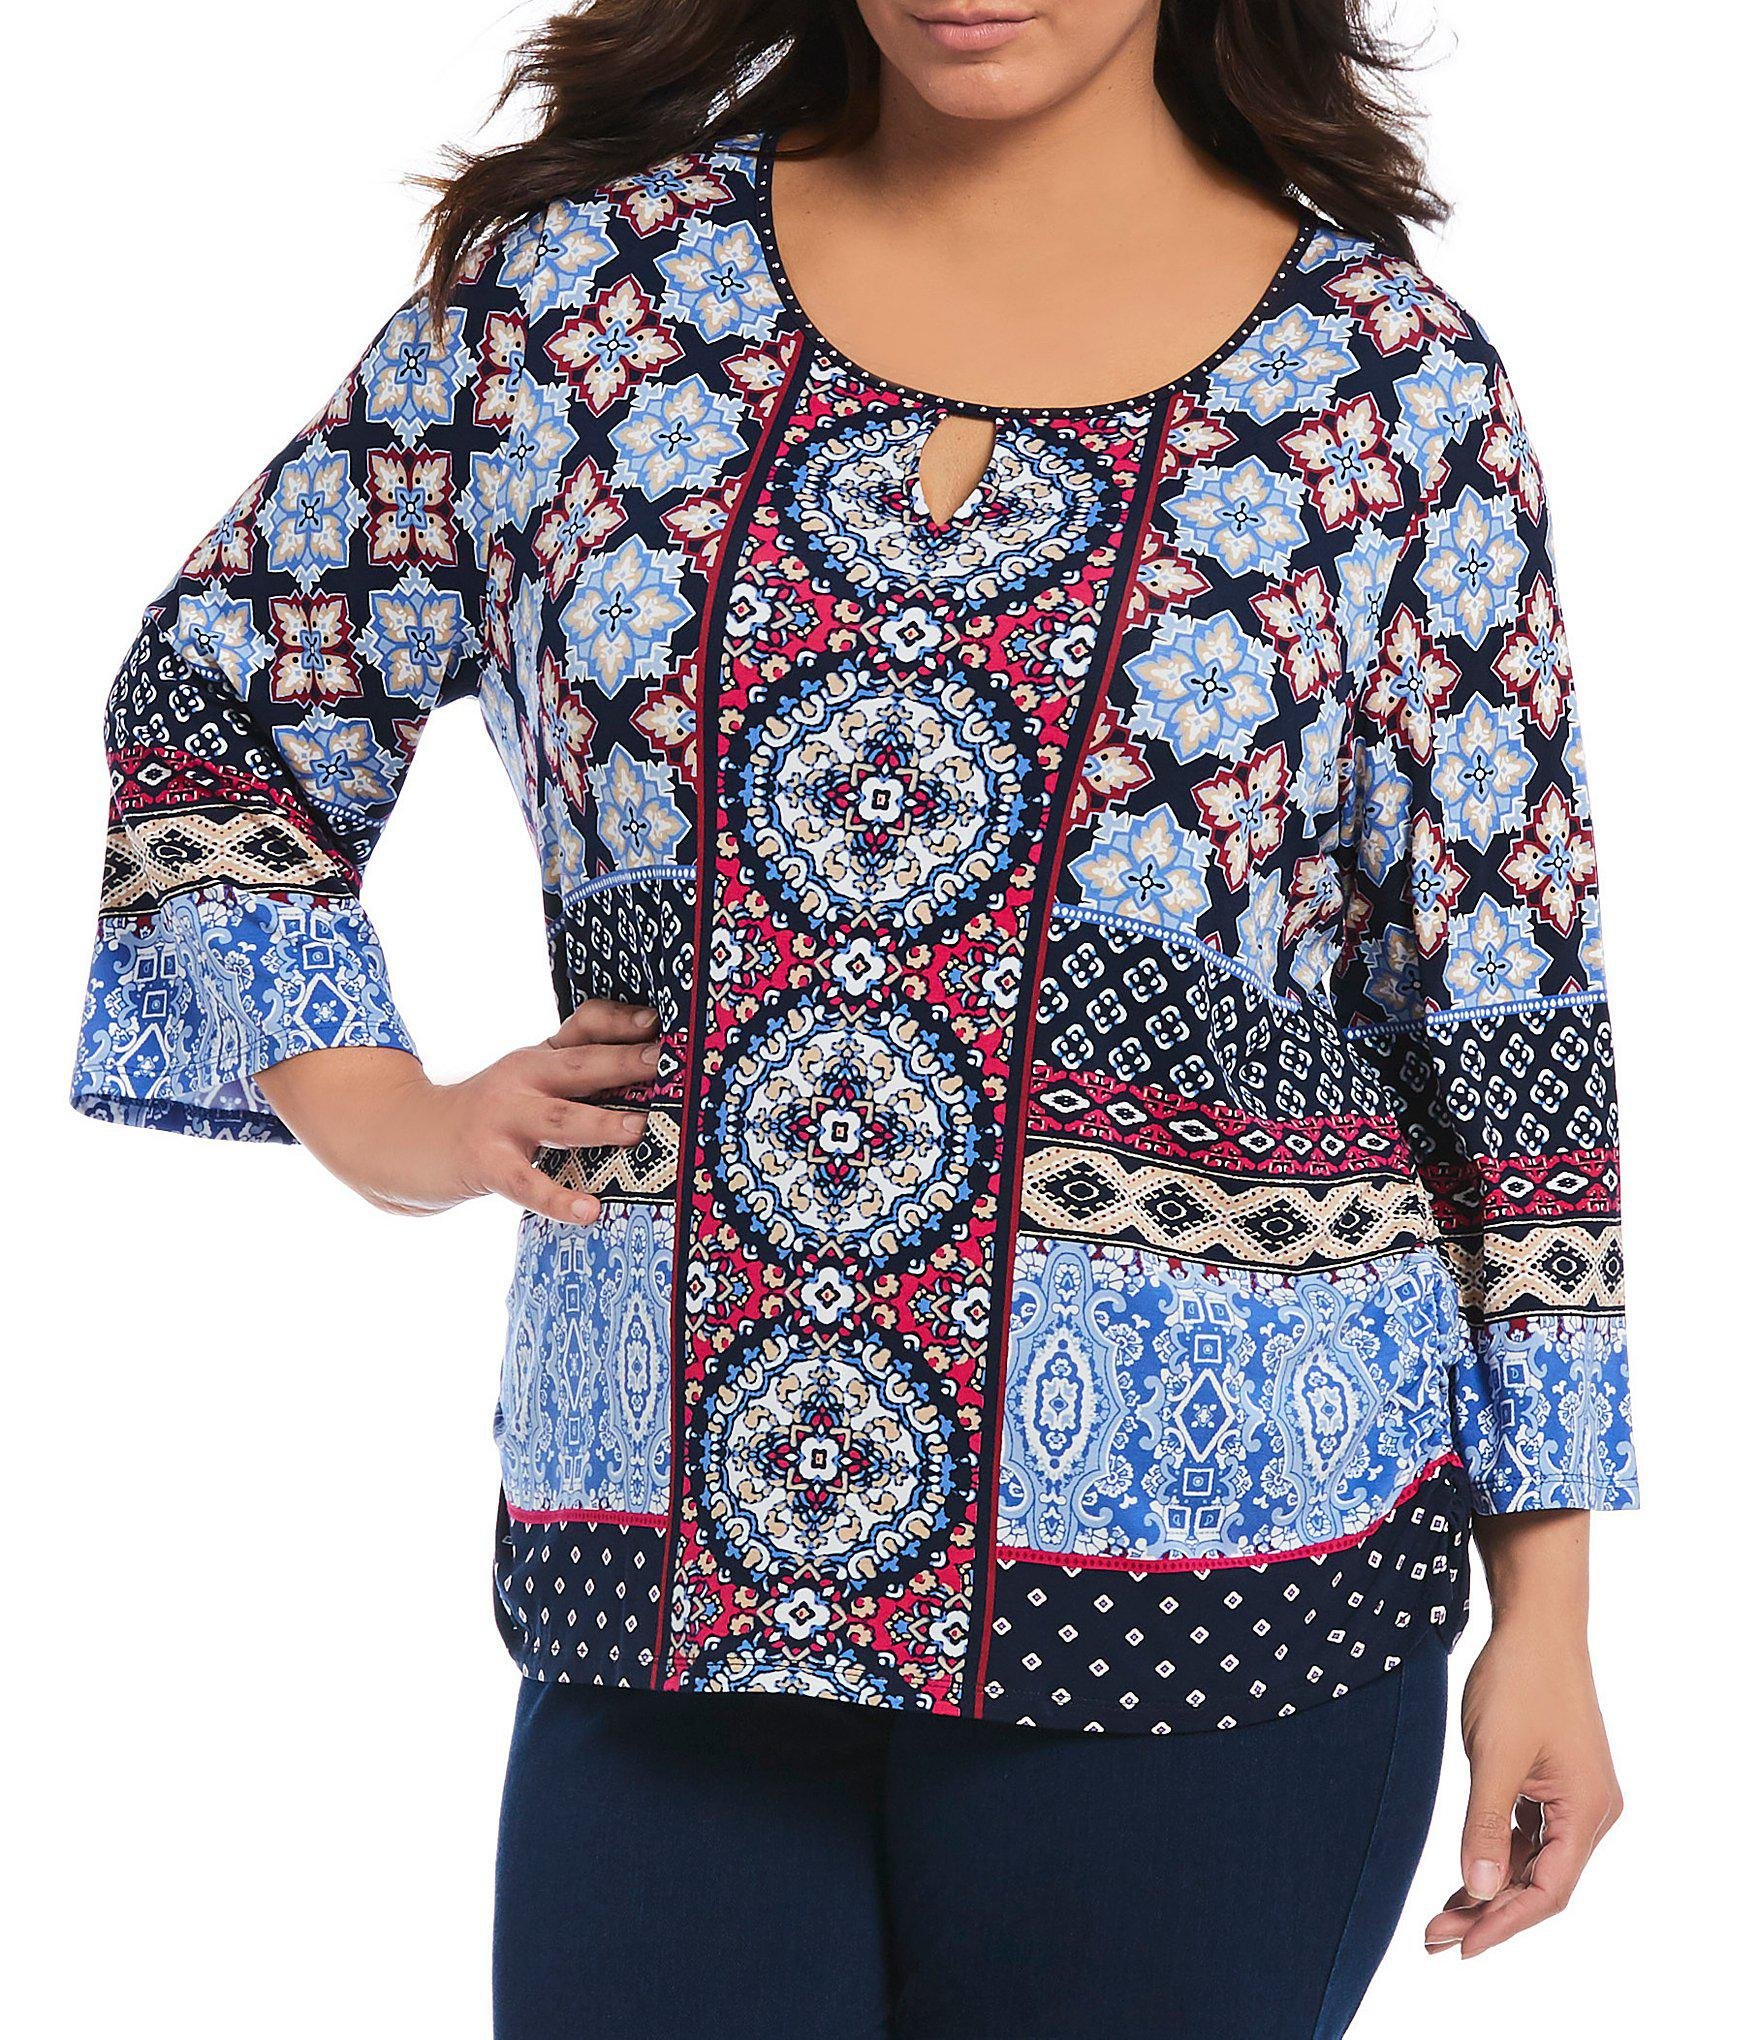 67f80facb25 Lyst - Ruby Rd Plus Size Medallion Placement Print 3 4 Sleeve Knit ...